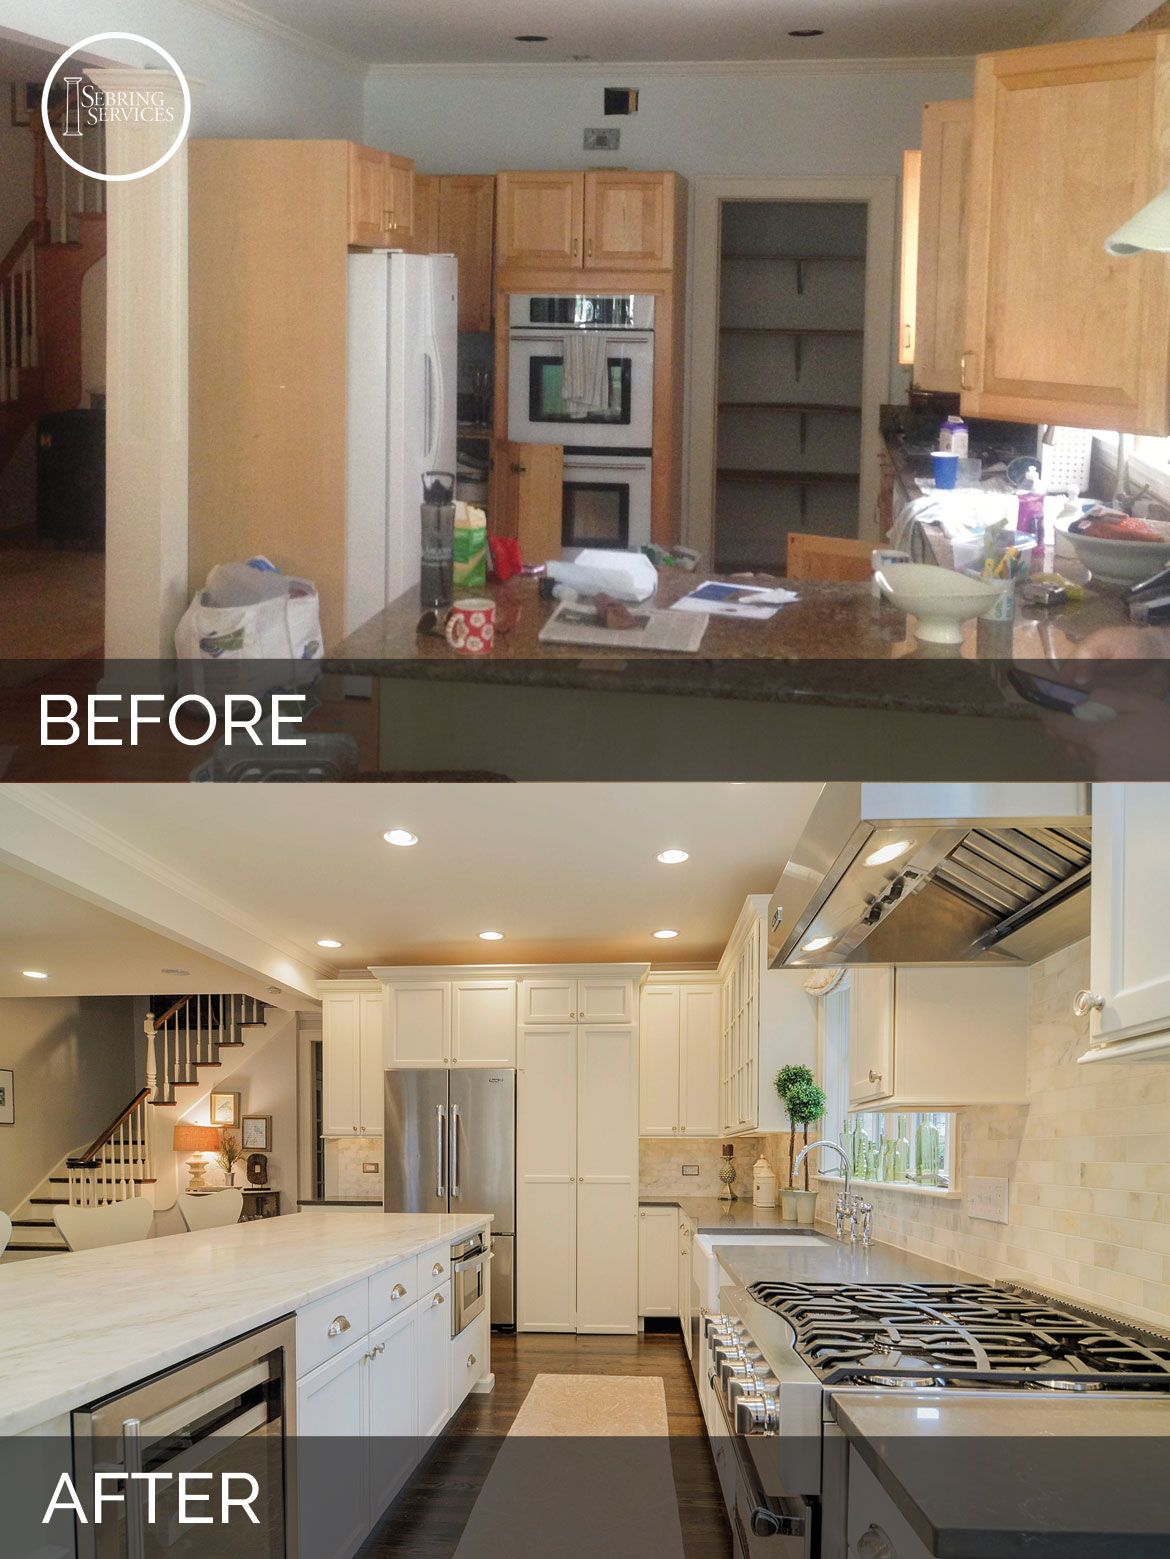 Ben ellen 39 s kitchen before after pictures kitchens for Kitchen renovation before and after